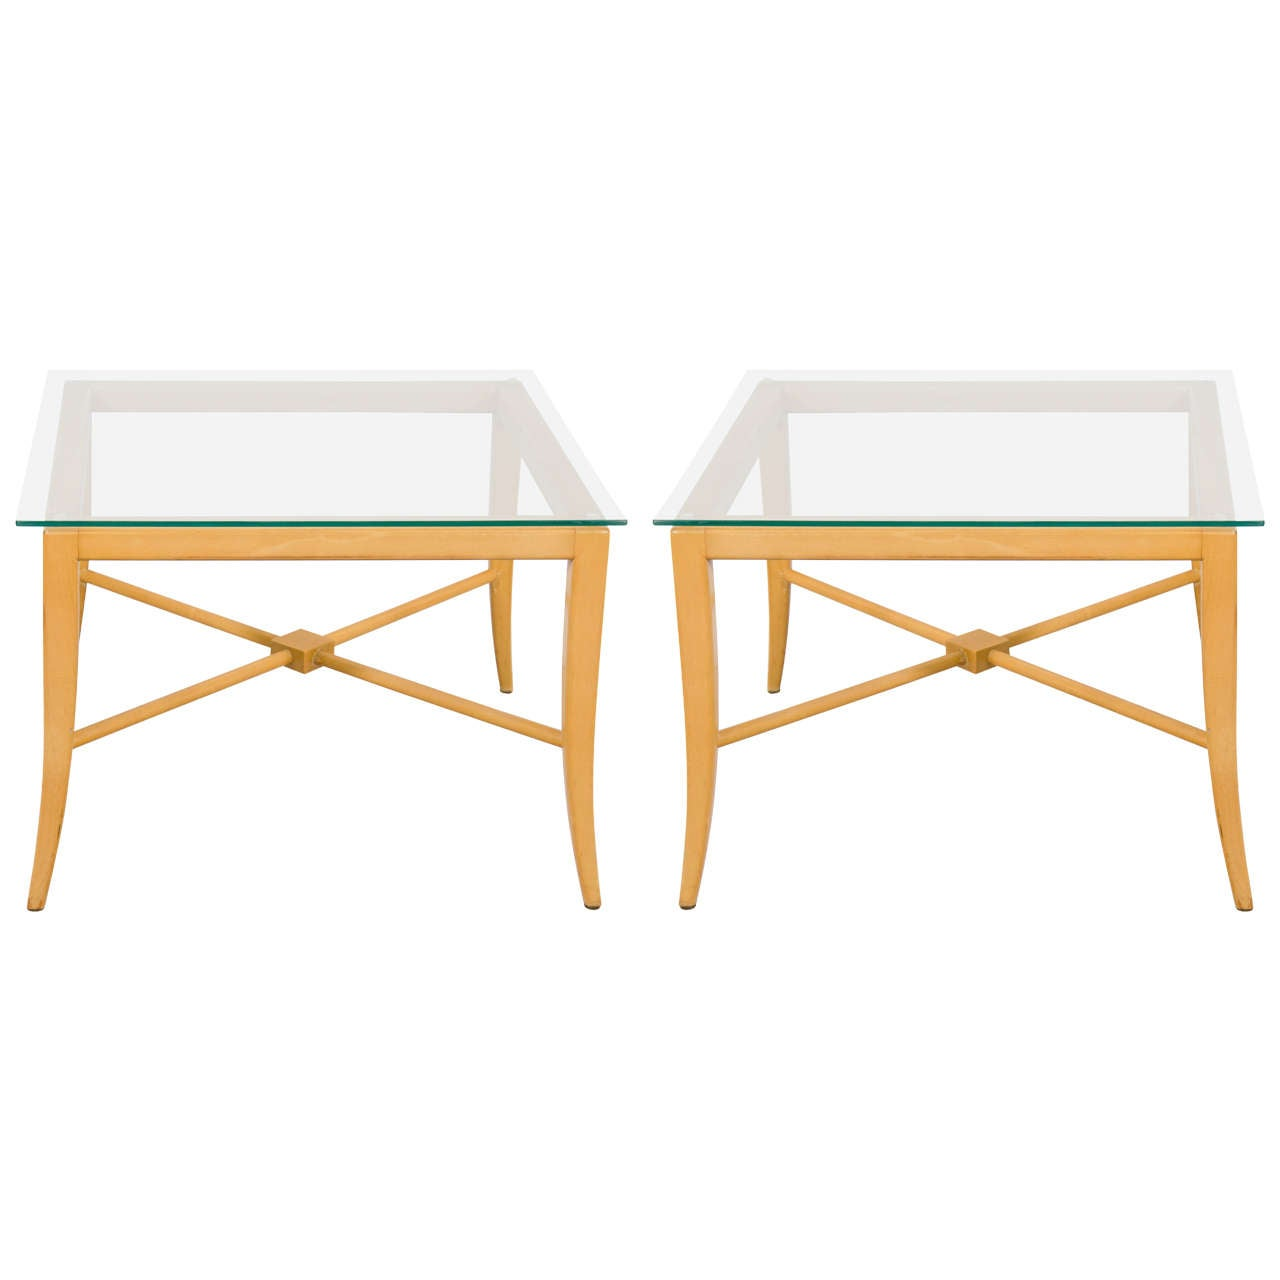 Pair of Tommi Parzinger End and Side Tables with X-Base Frame